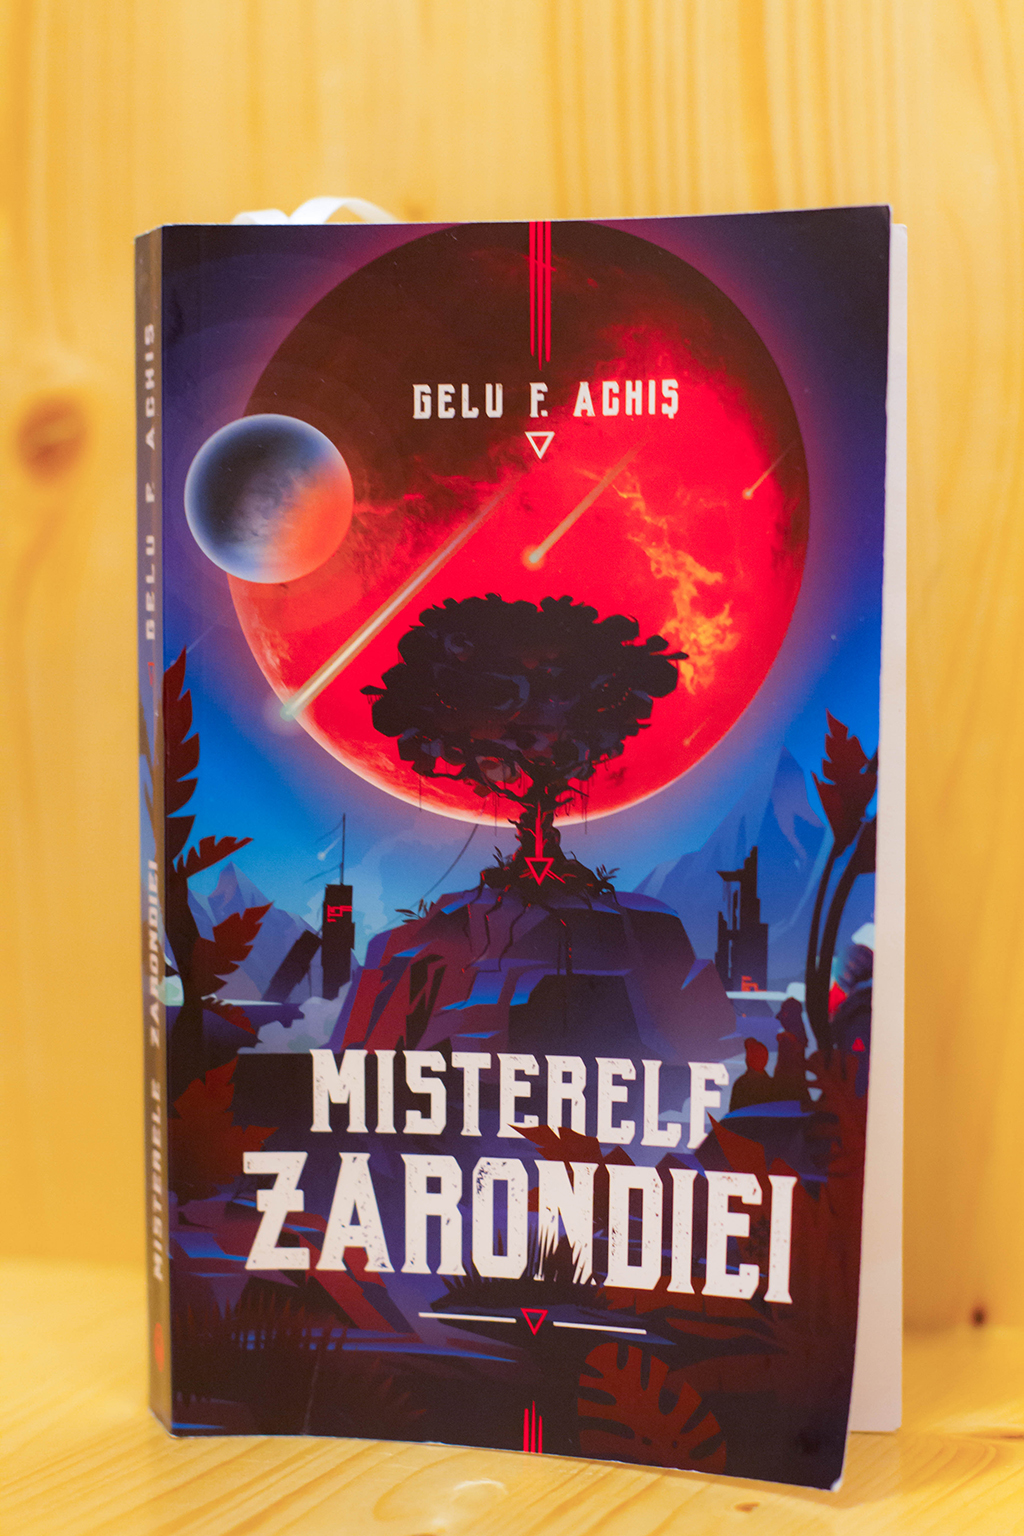 recenzie carte misterele zarondiei gelu achis science fiction